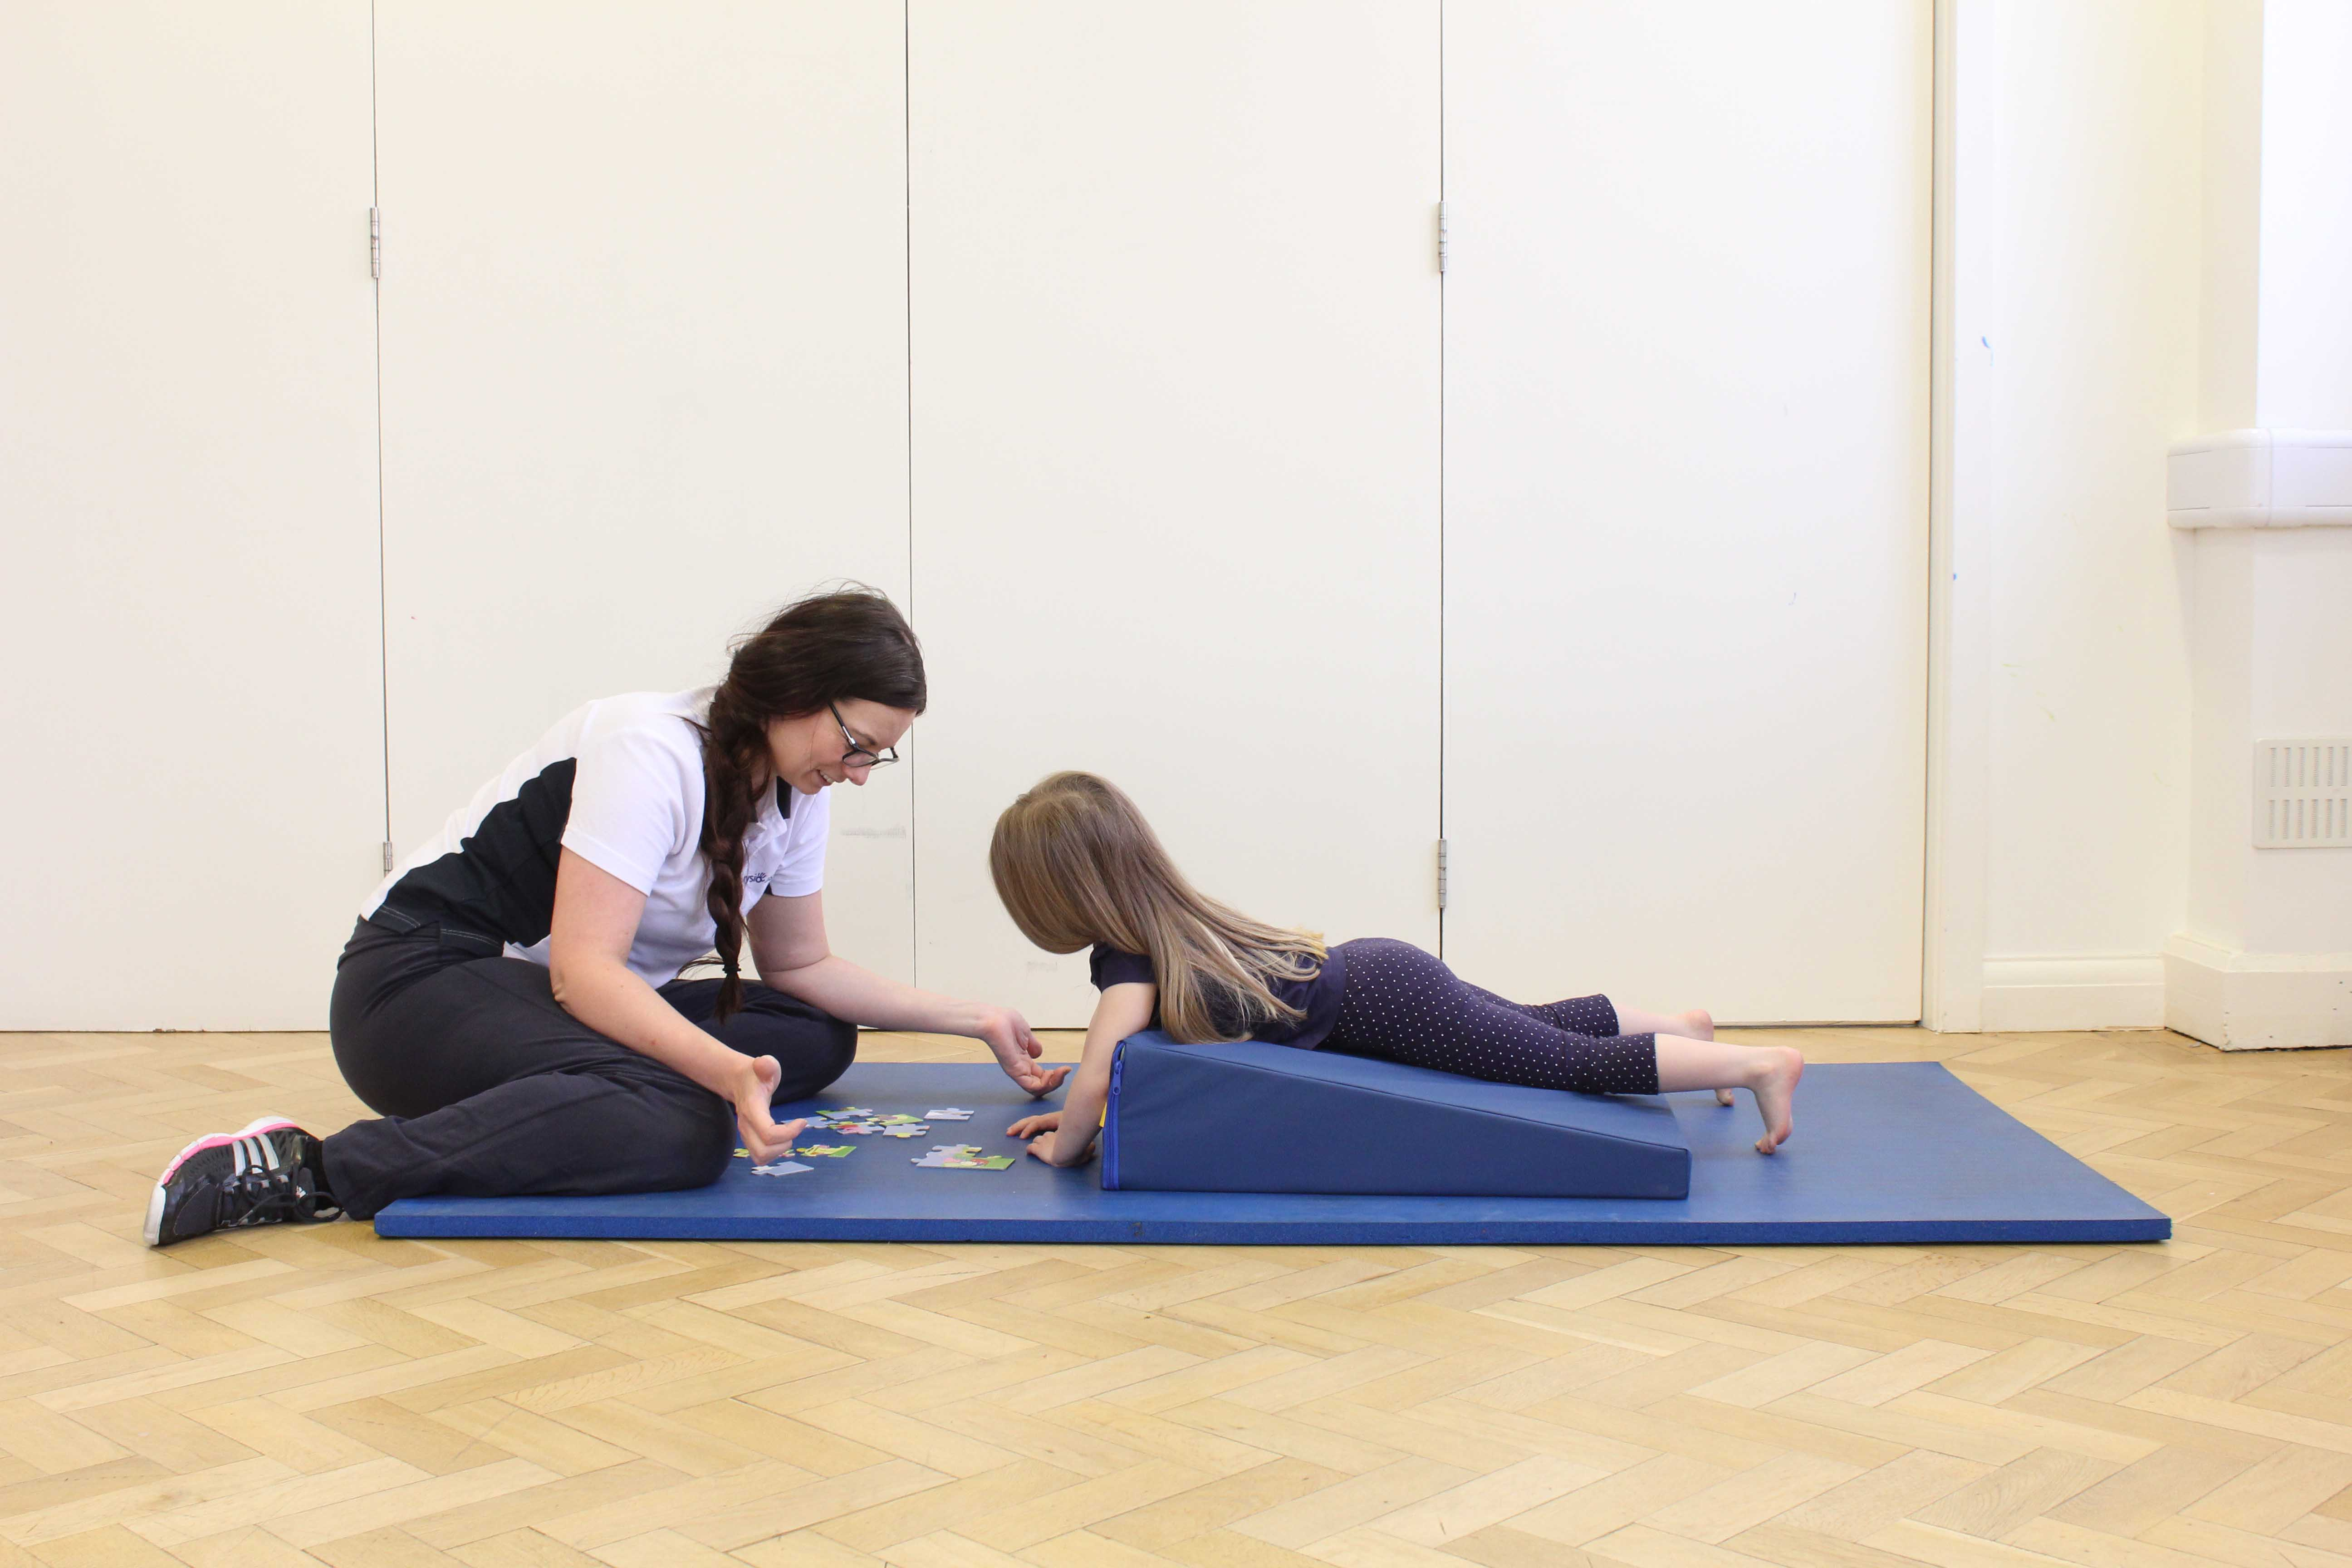 Upper limb mobility exercises through play activities supervised by a neurological physiotherapist